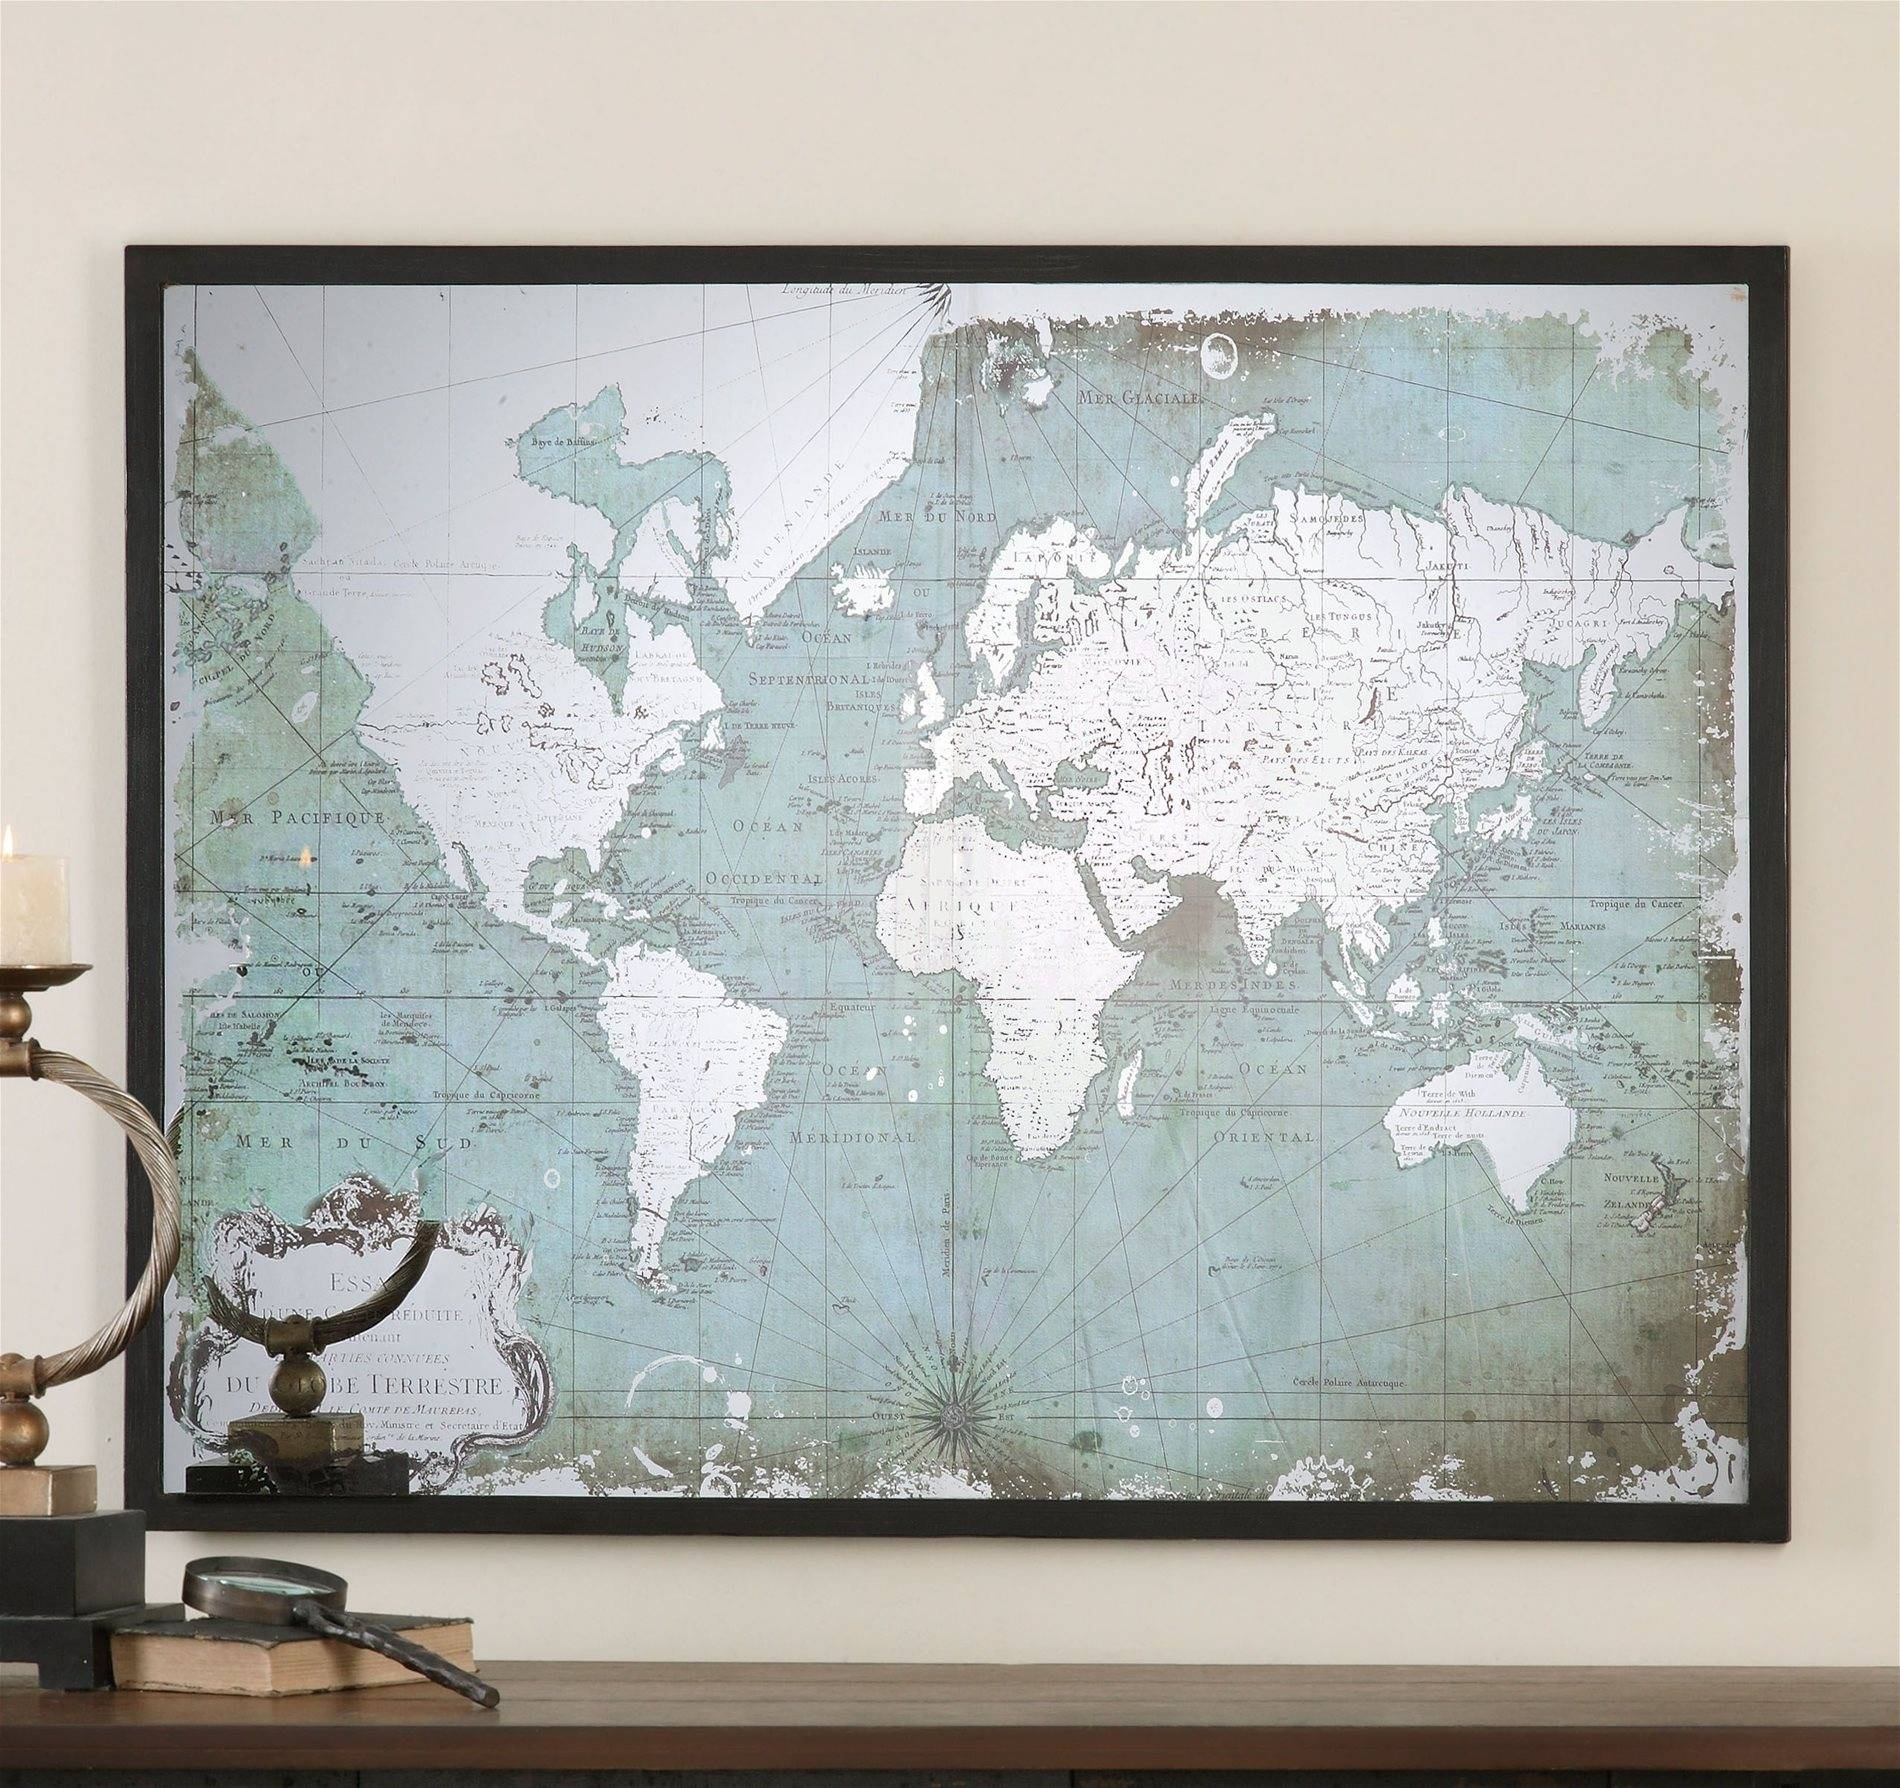 Family World Map Wall Decal Art | Design Idea And Decorations In 2018 Framed Map Wall Art (View 7 of 20)